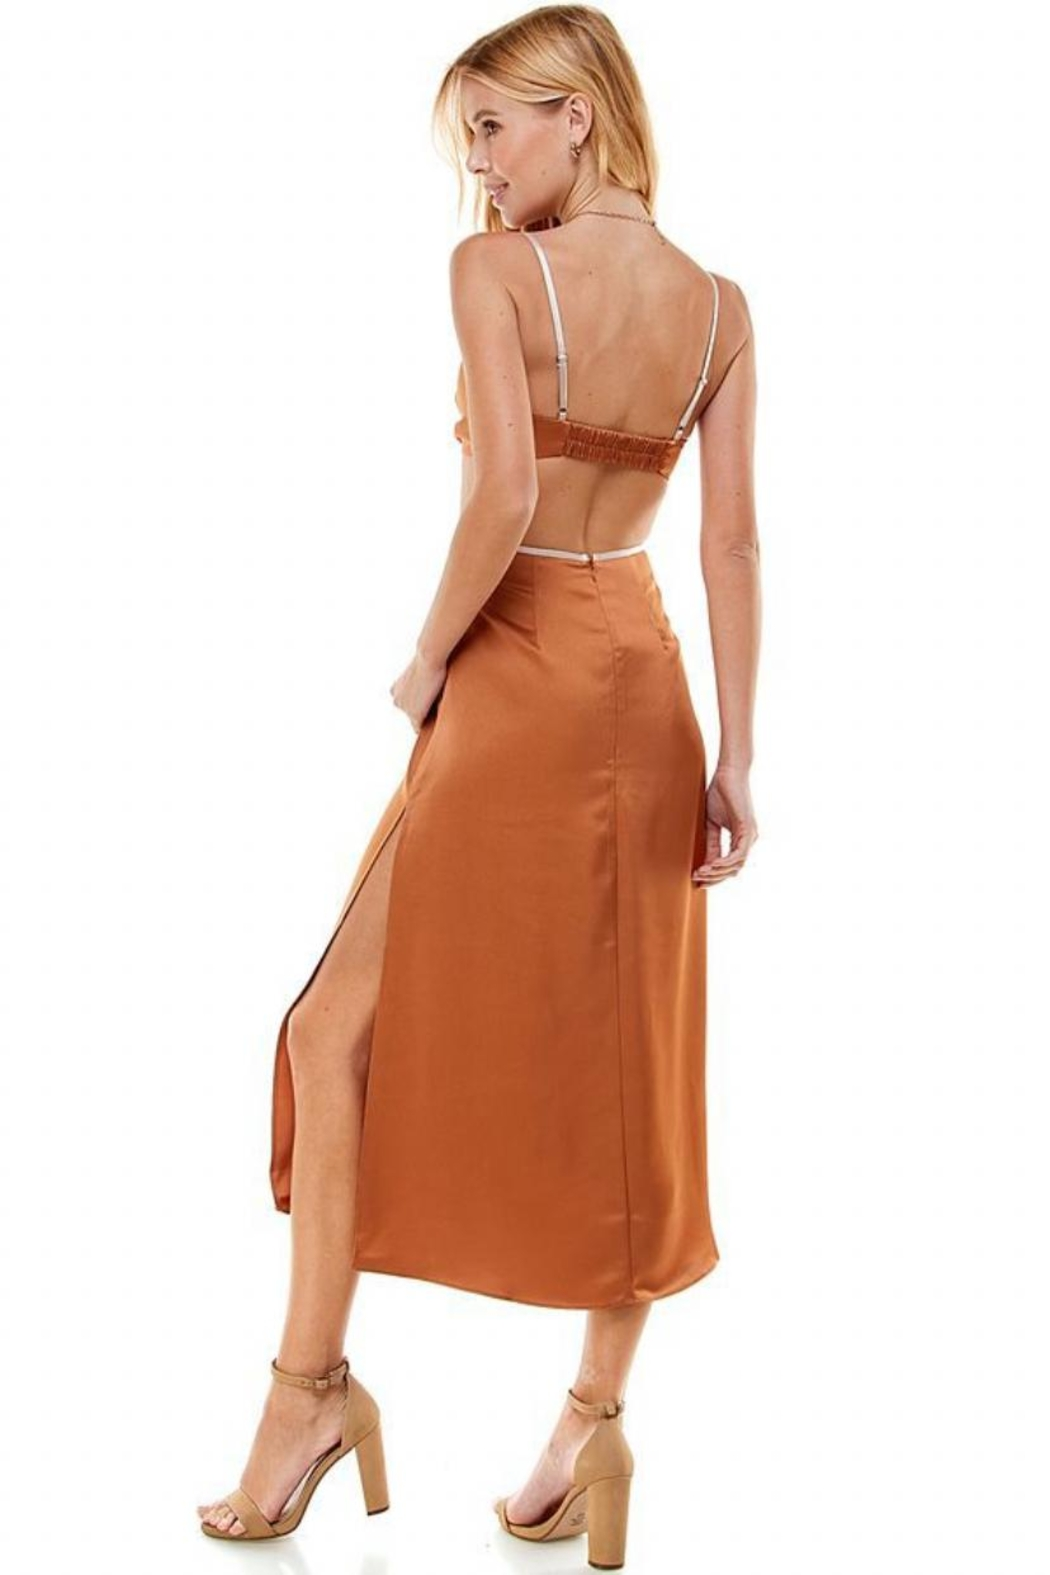 ACOA Color-Block Cut-Out Dress - Side Cropped Image